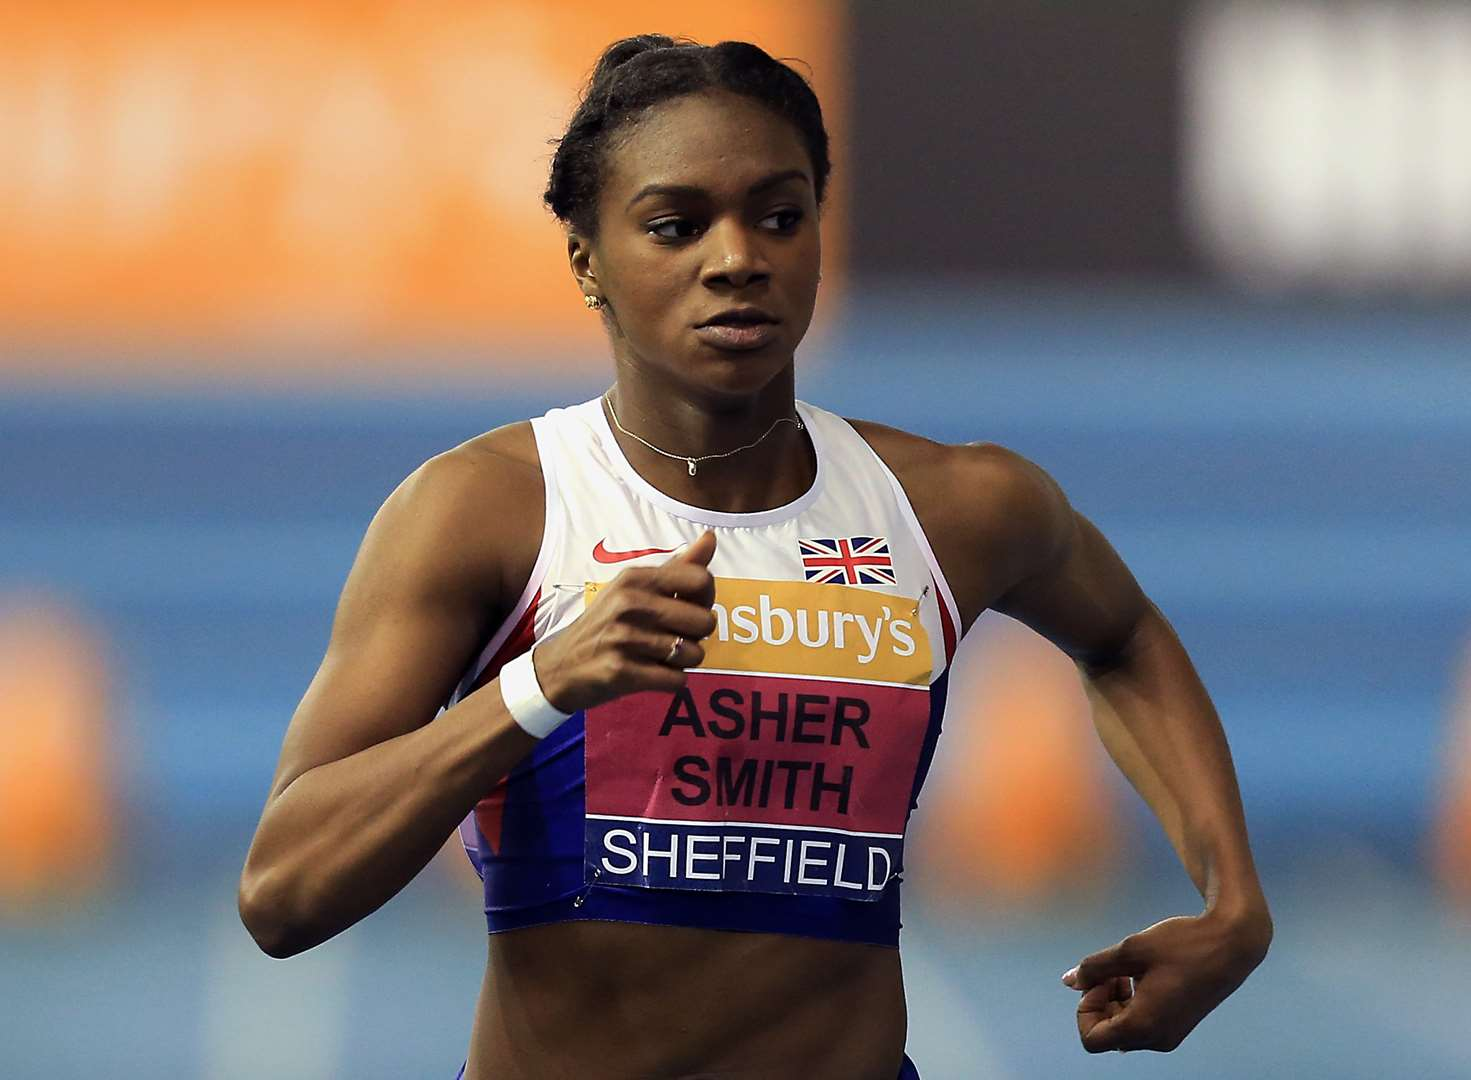 Medal joy for Asher-Smith